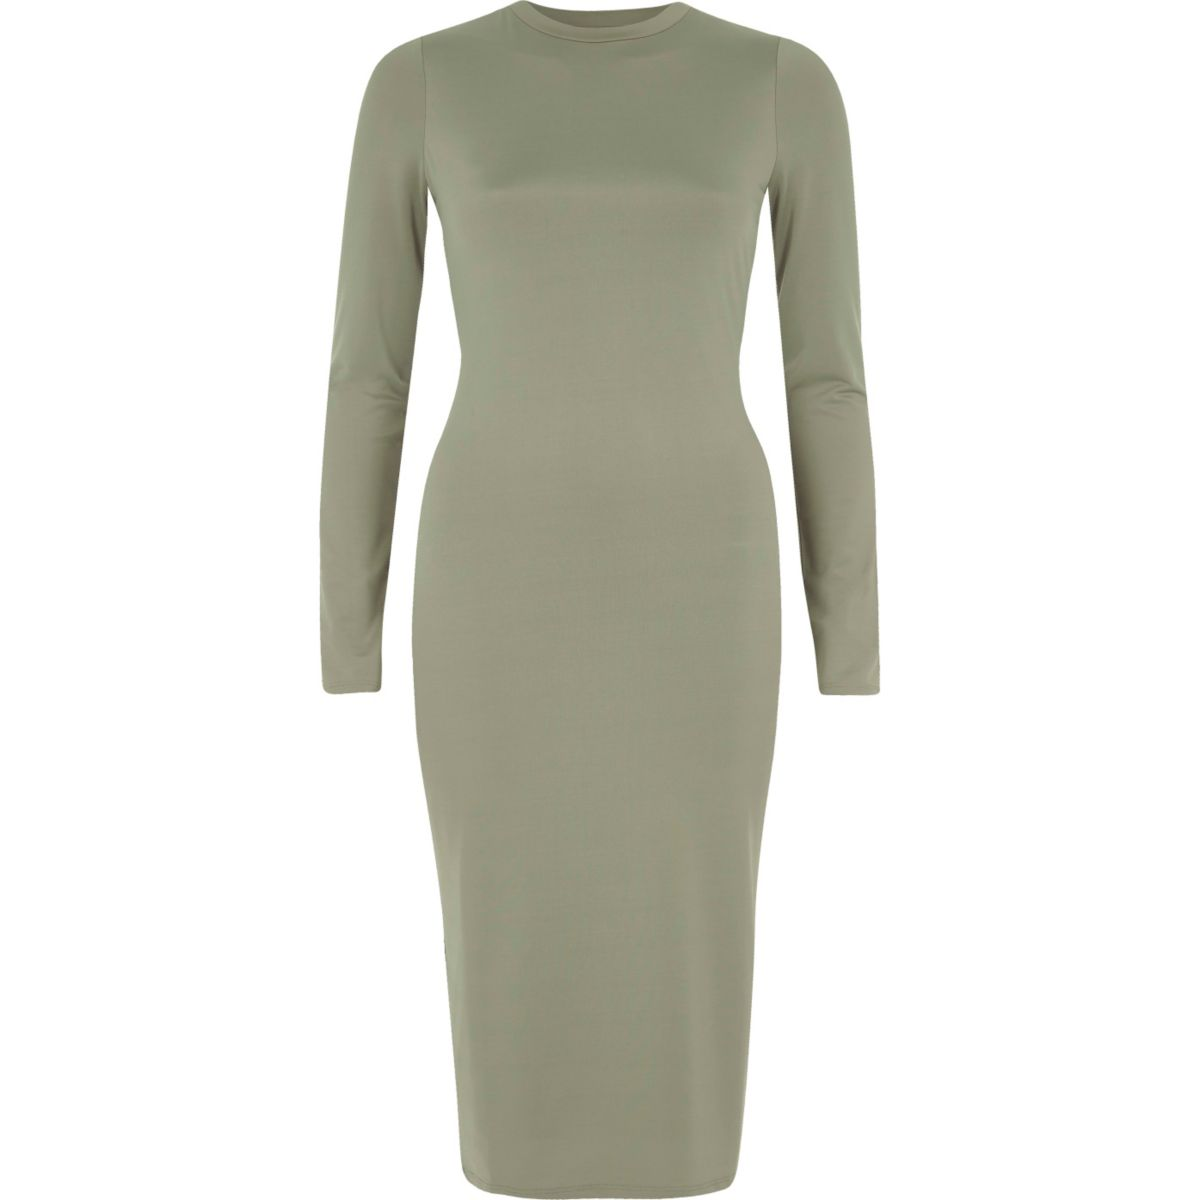 Light green long sleeve bodycon midi dress